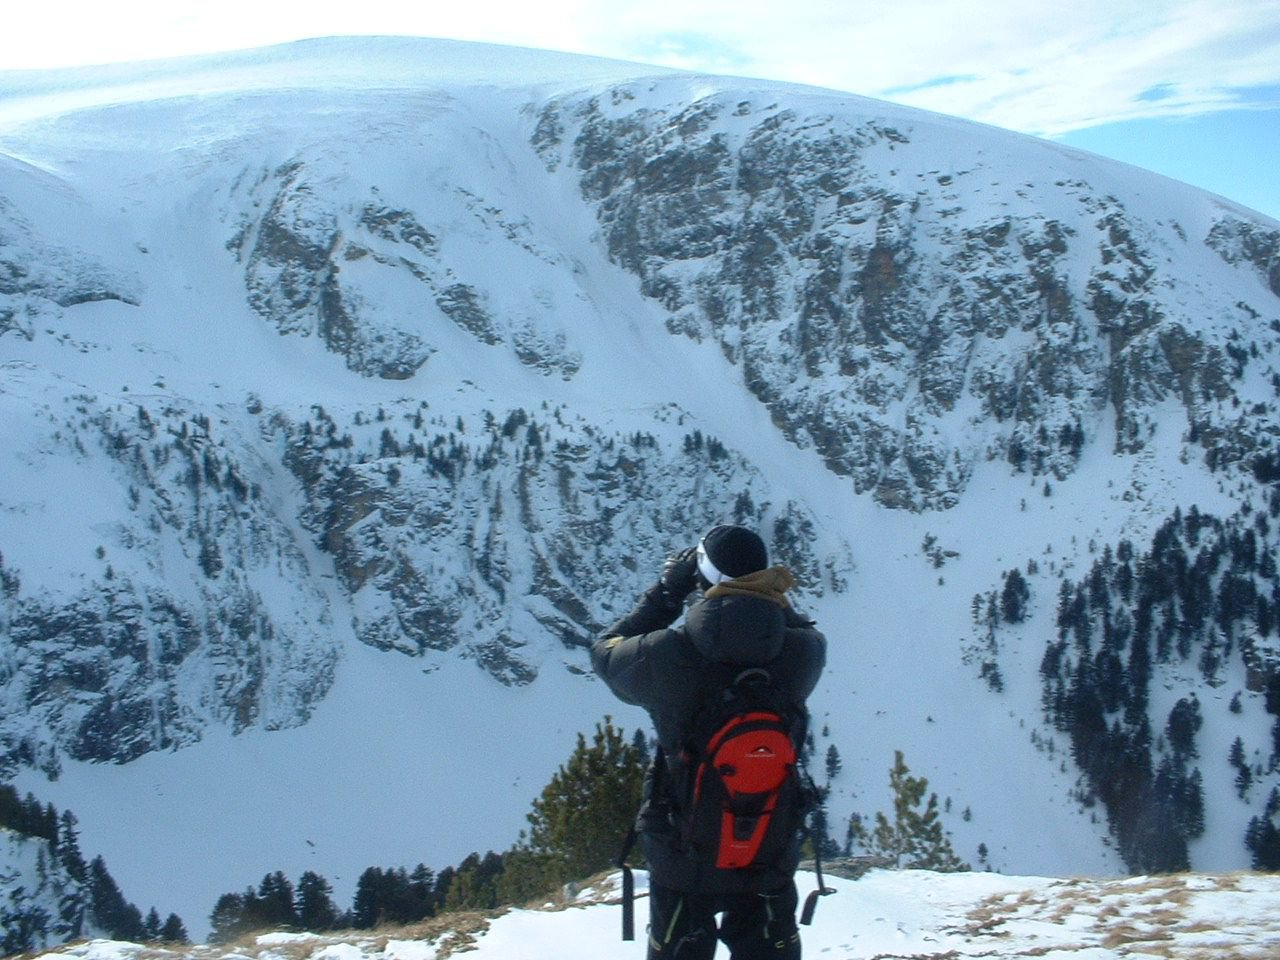 Checking 1st descent in bulgaria